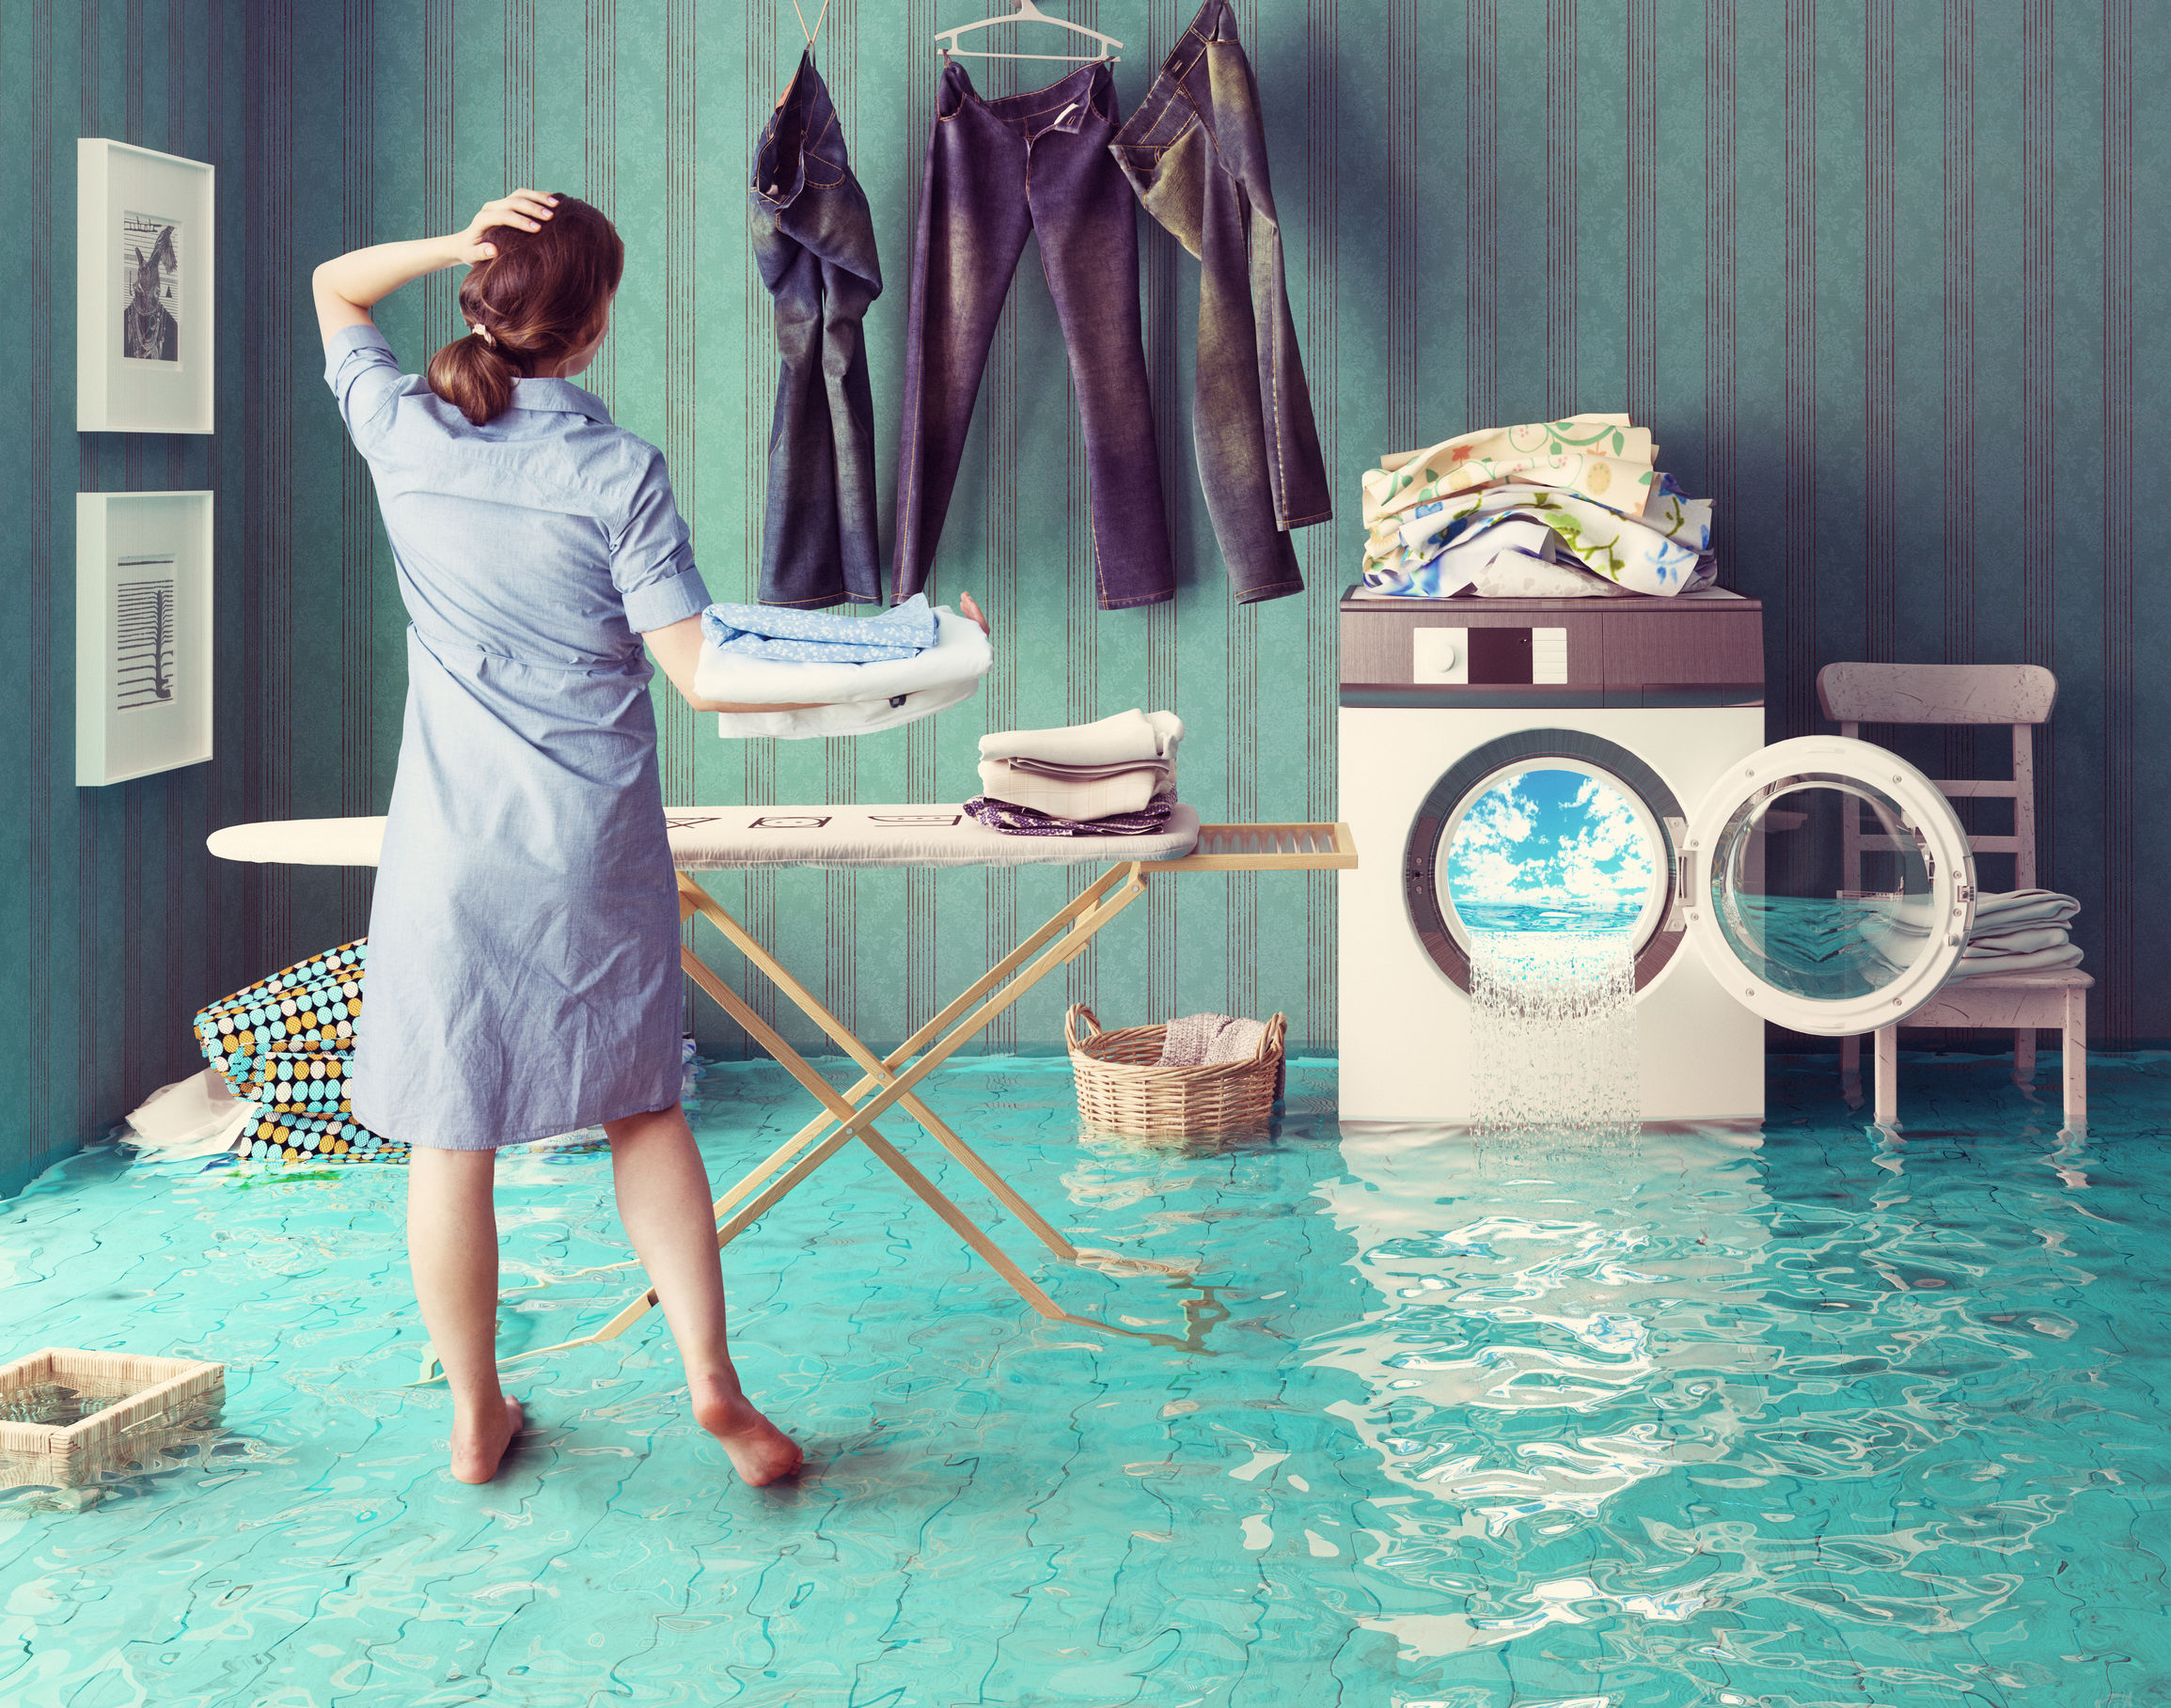 Five mistakes people make when using their washing machine